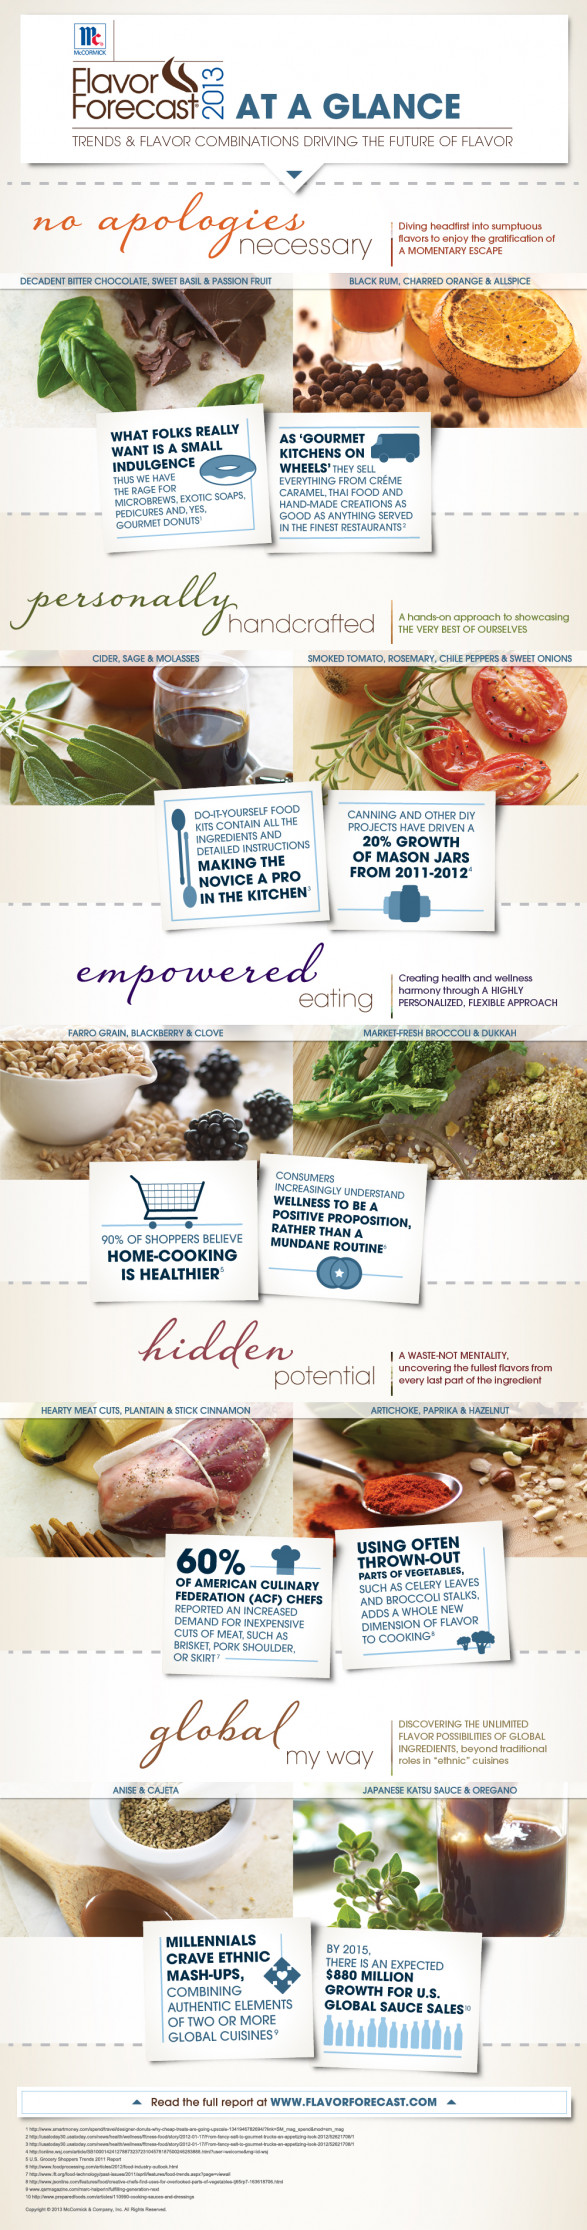 Gourmet Future: A Forecast on Flavors and Taste Trends this 2013